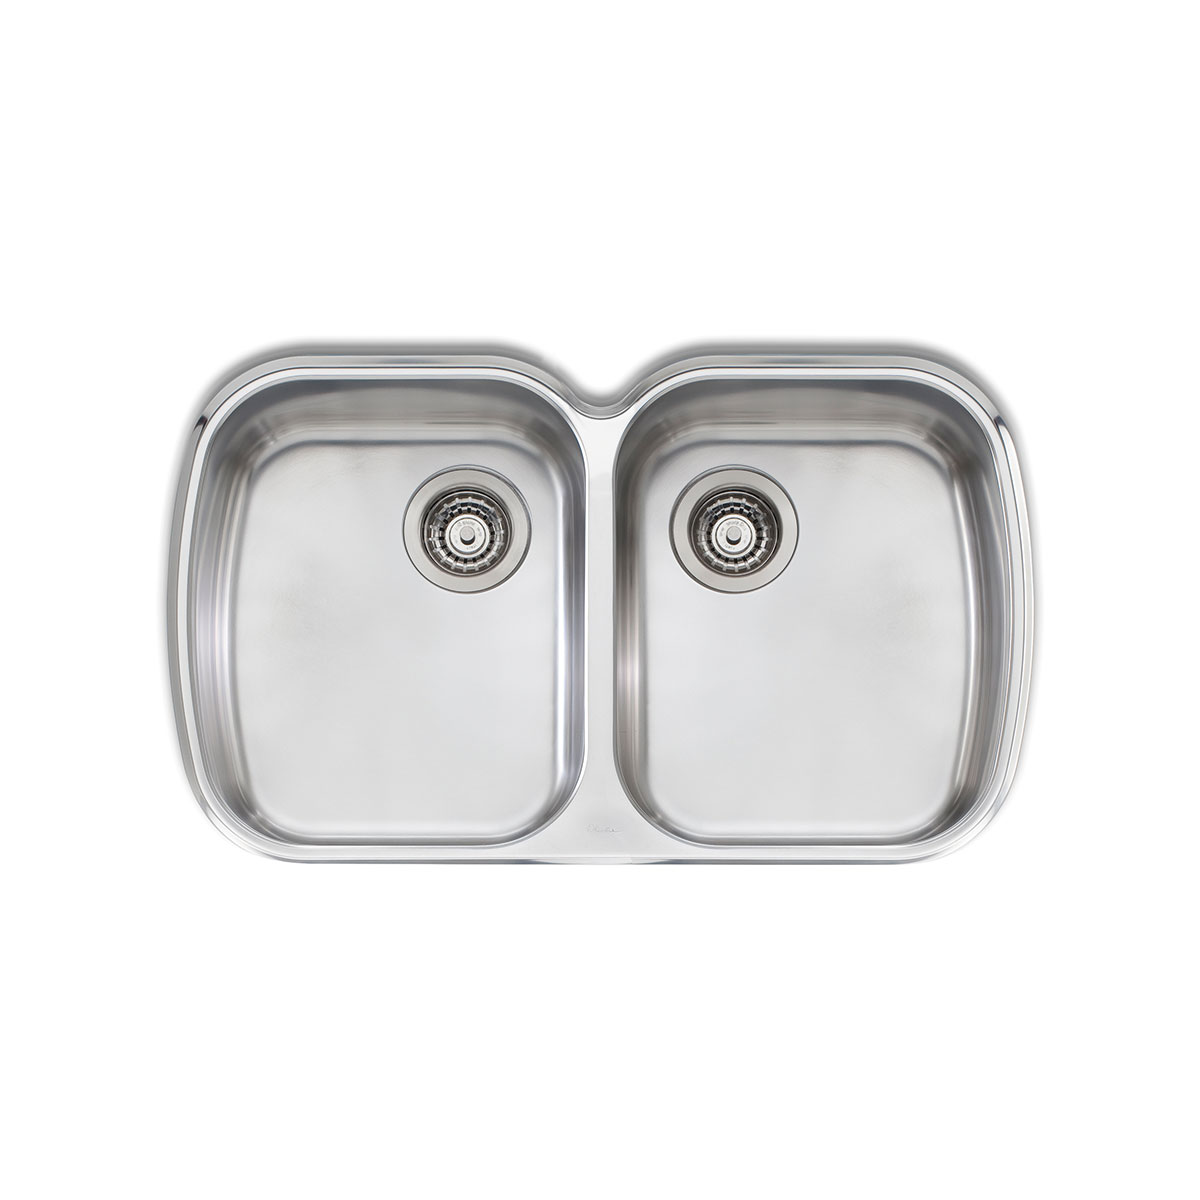 Oliveri WA10UPACK Diaz Undermount Sink Pack